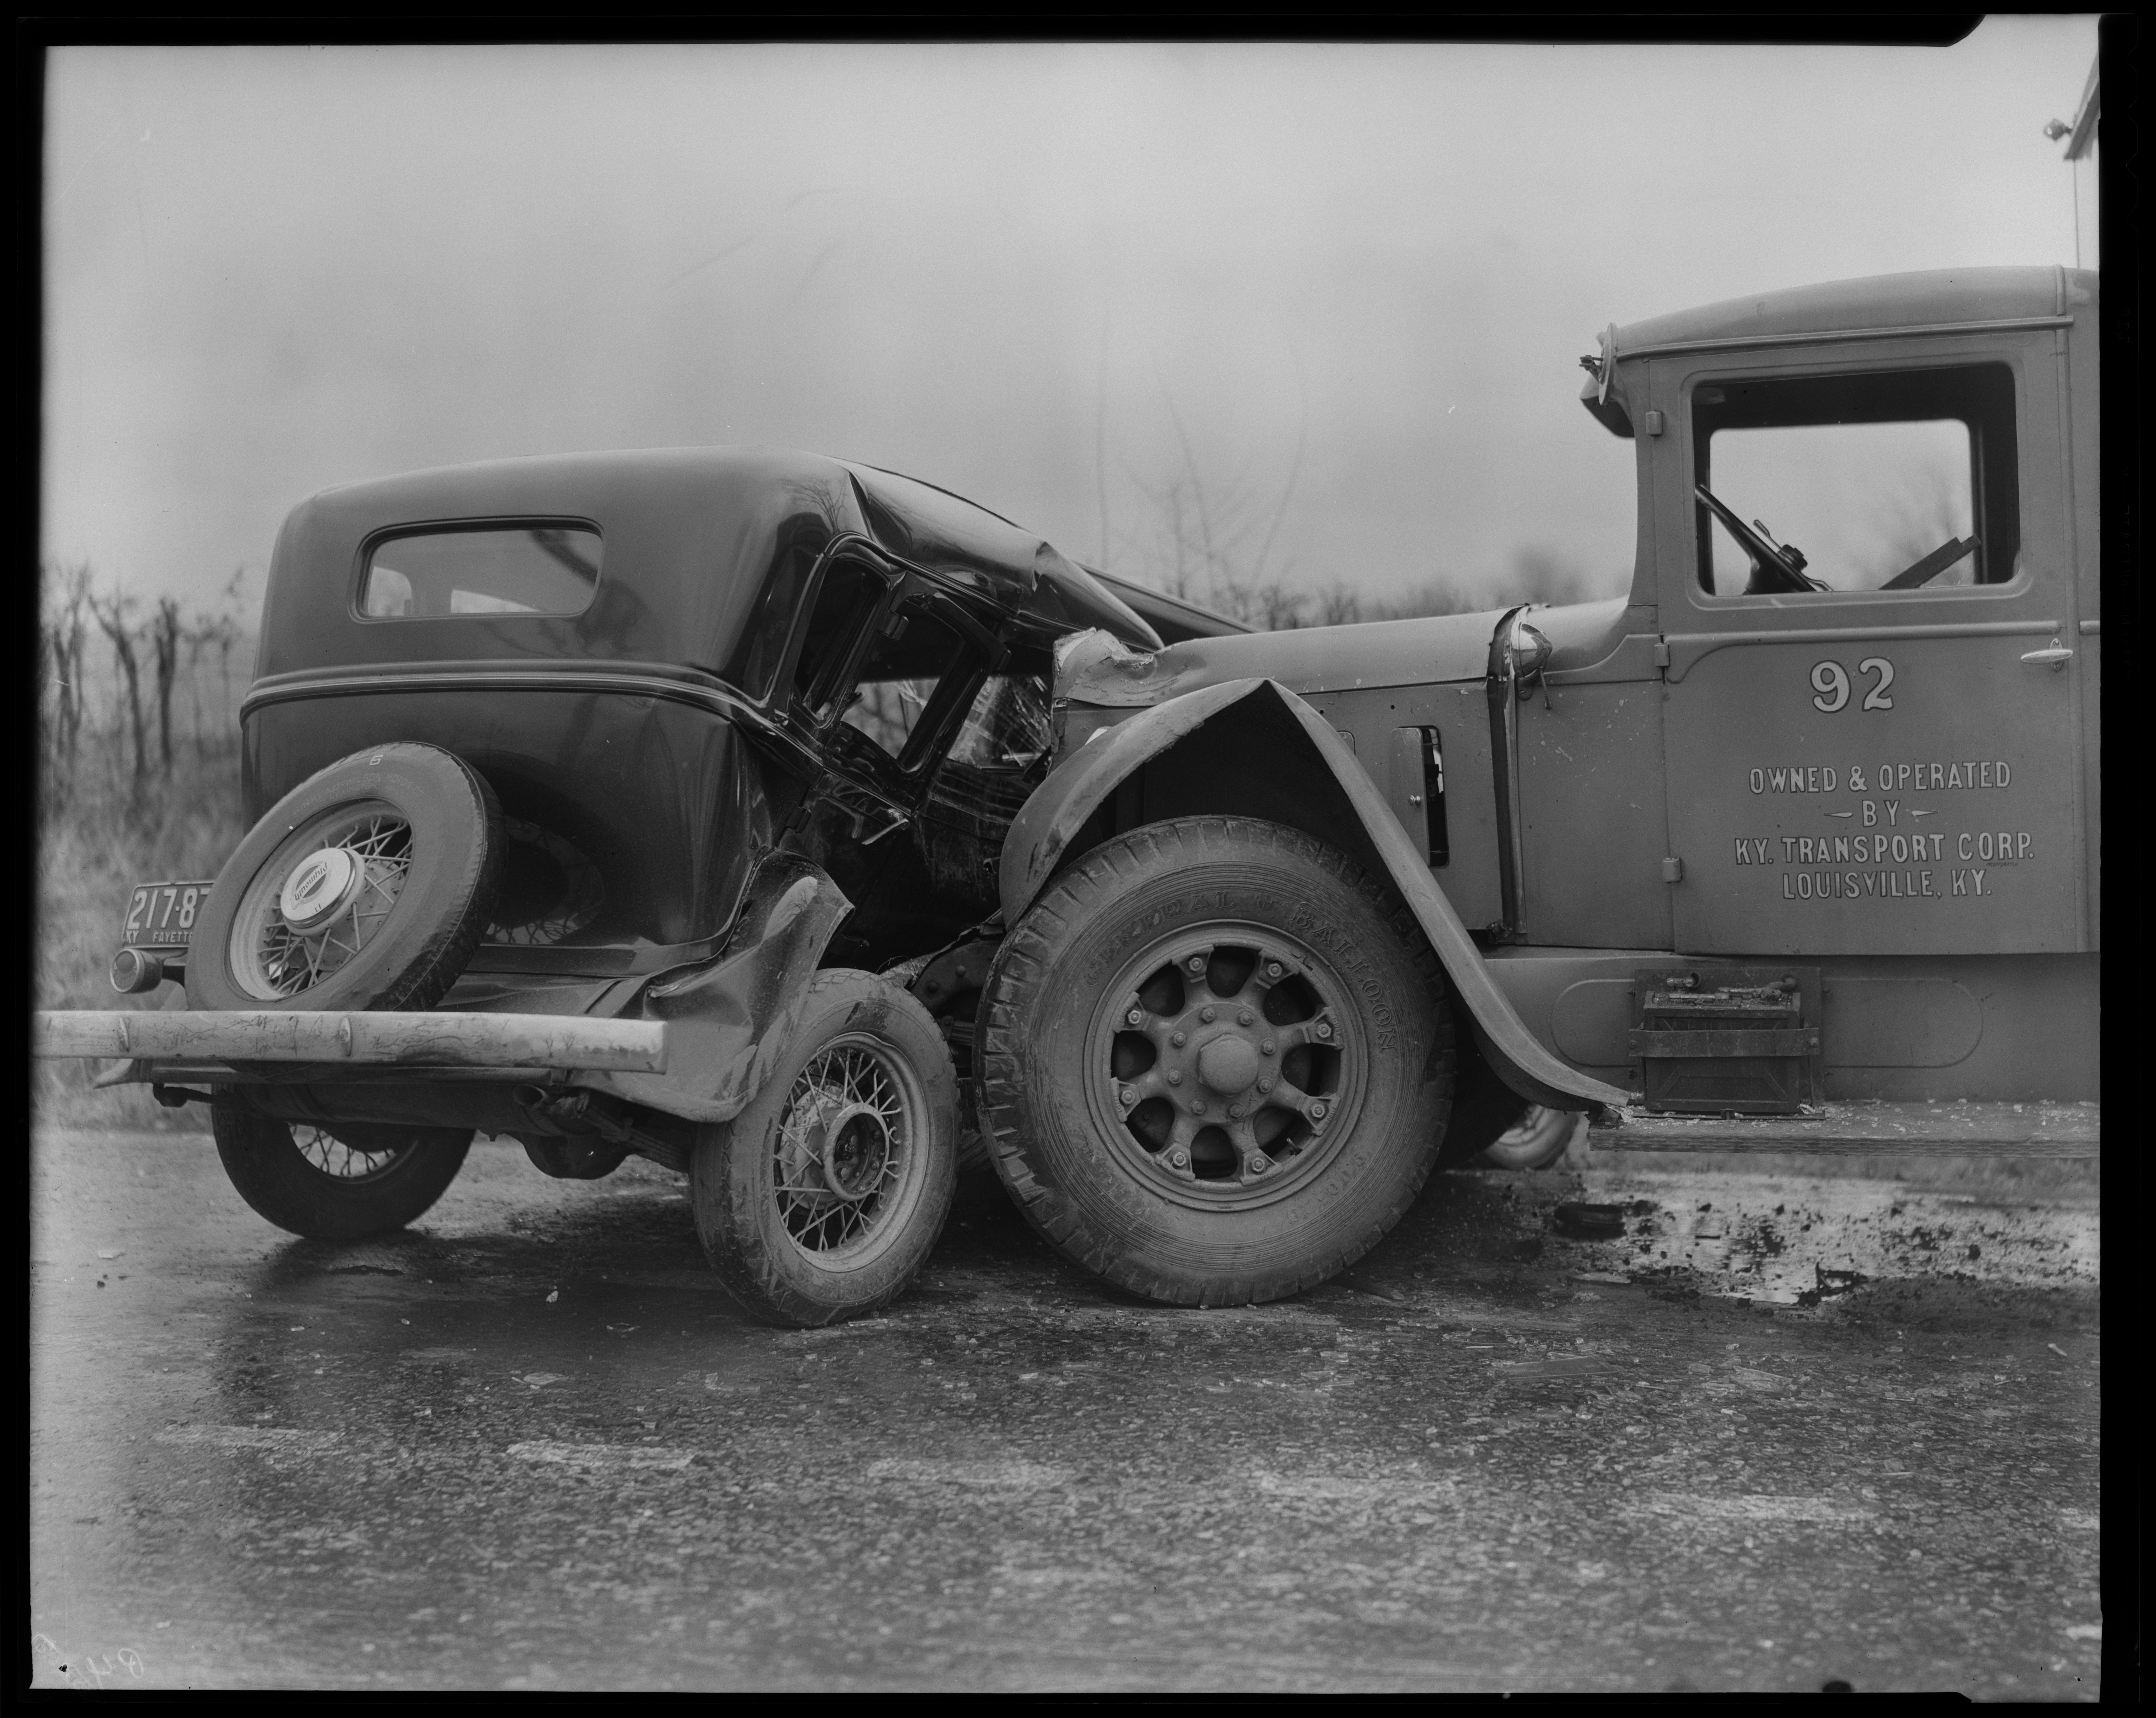 Truck, car crash (Kentucky Transport) - Kentucky Digital Library